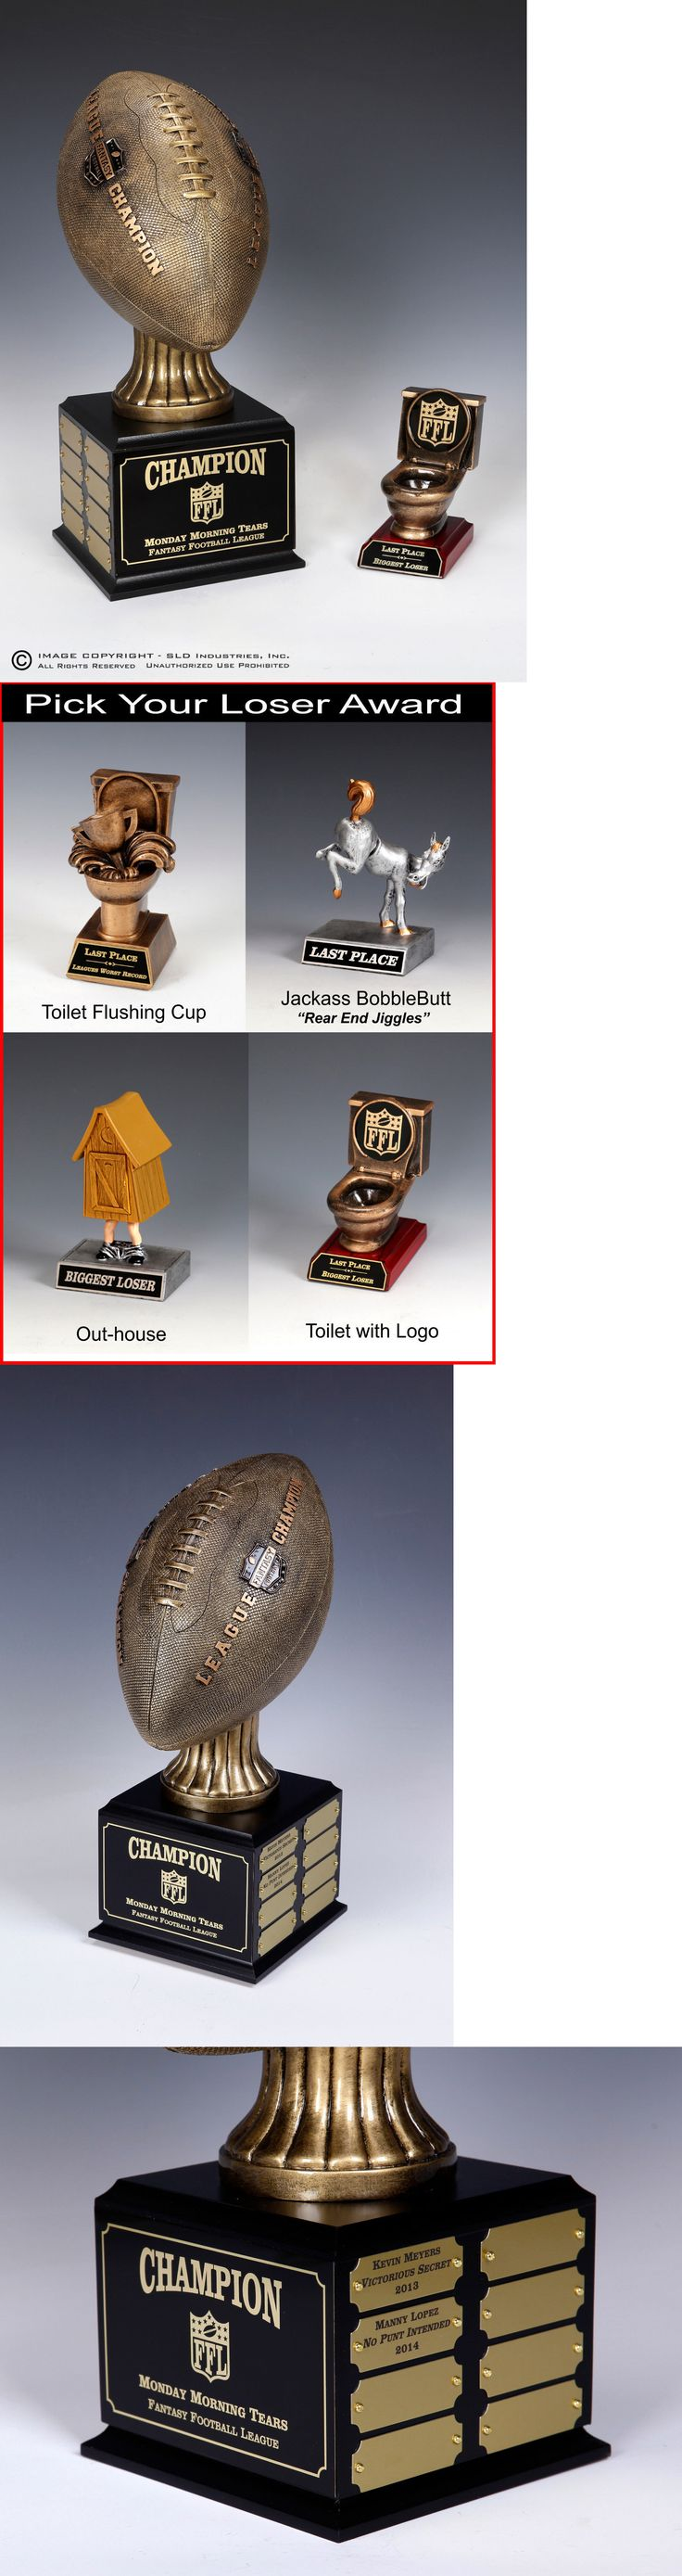 Other Football 2024: Fantasy Football Perpetual Trophy 16 Yr Combo With Loser-Last Place Award-Toilet -> BUY IT NOW ONLY: $99.9 on eBay!